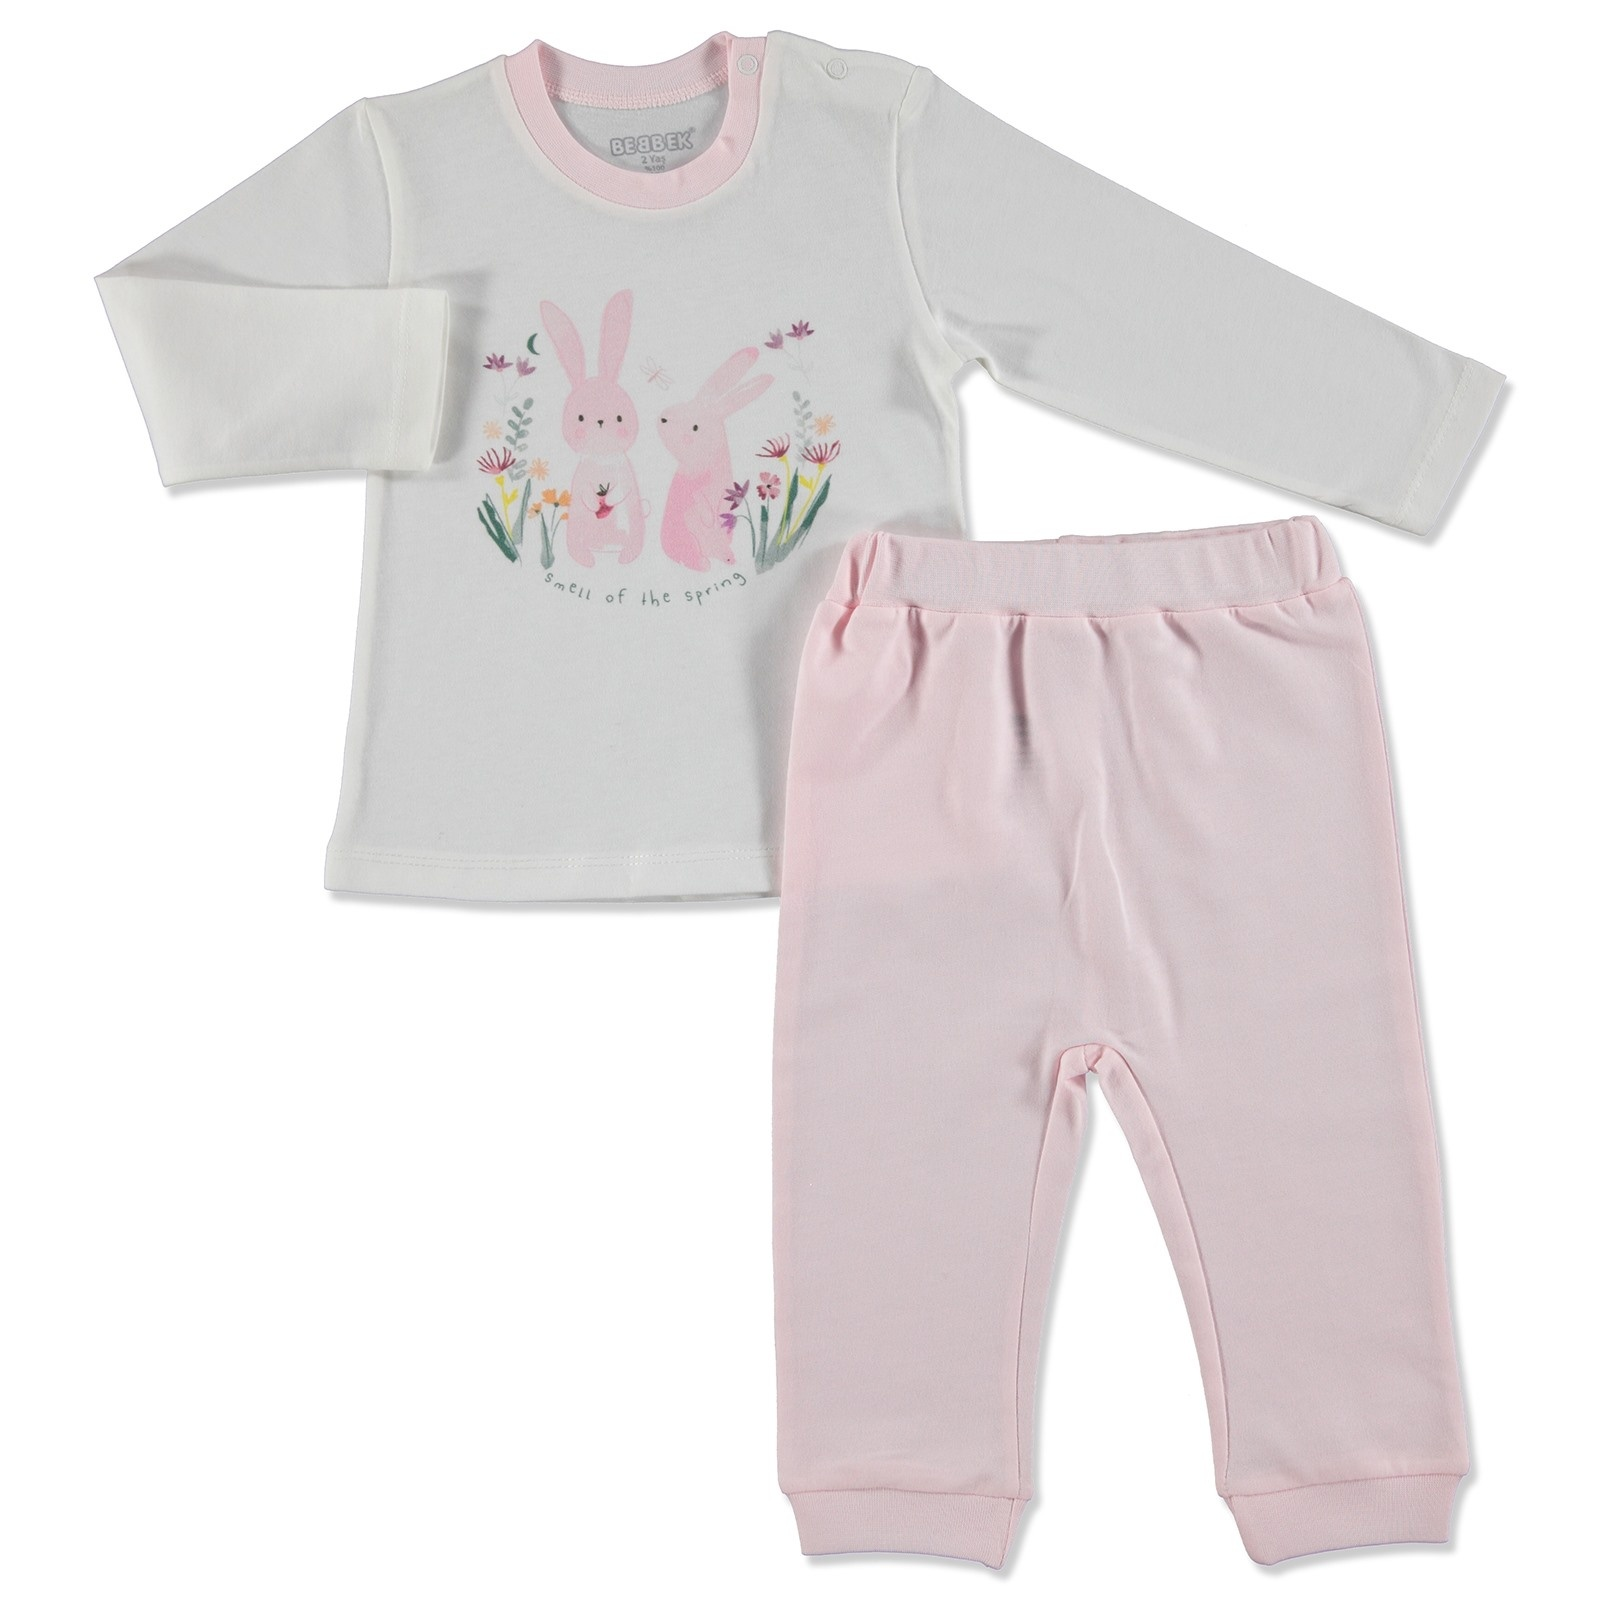 Ebebek Bebbek Summer Baby Girl Spring Supreme Crew-Neck Sweatshirt Pant 2 Pcs Set